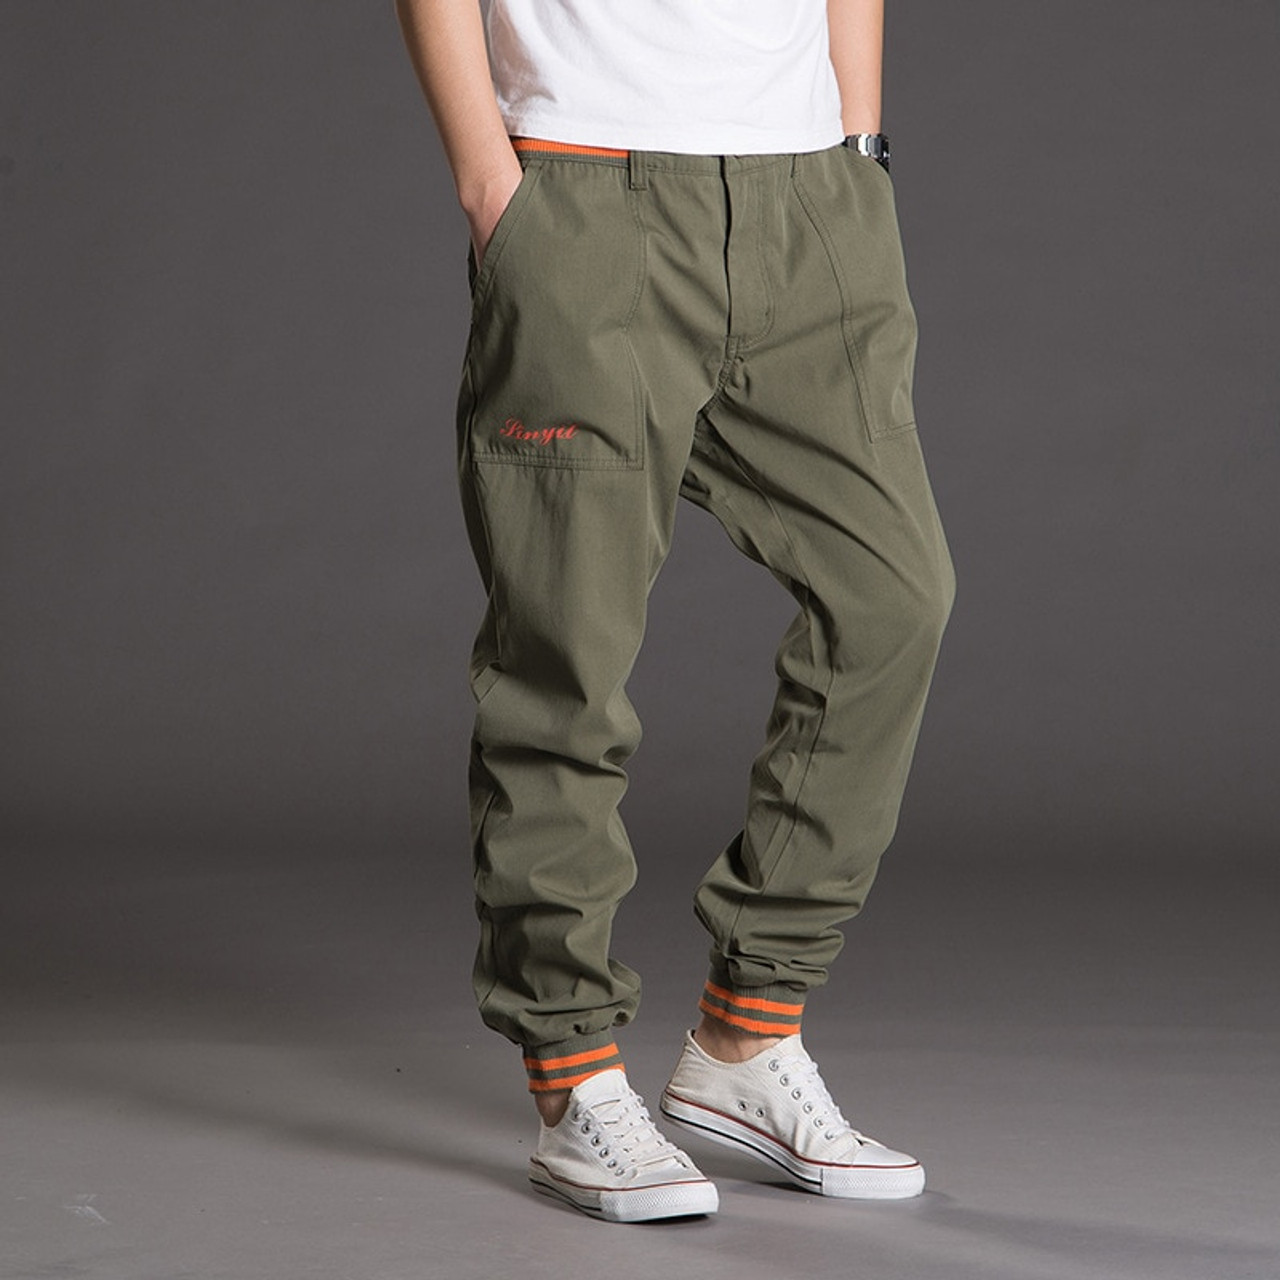 be93ba3772a ... Men Tactical Pants Camo Jogger Casual Cotton Trousers Multi Pocket  Military Style Army Camouflage Men s Cargo ...